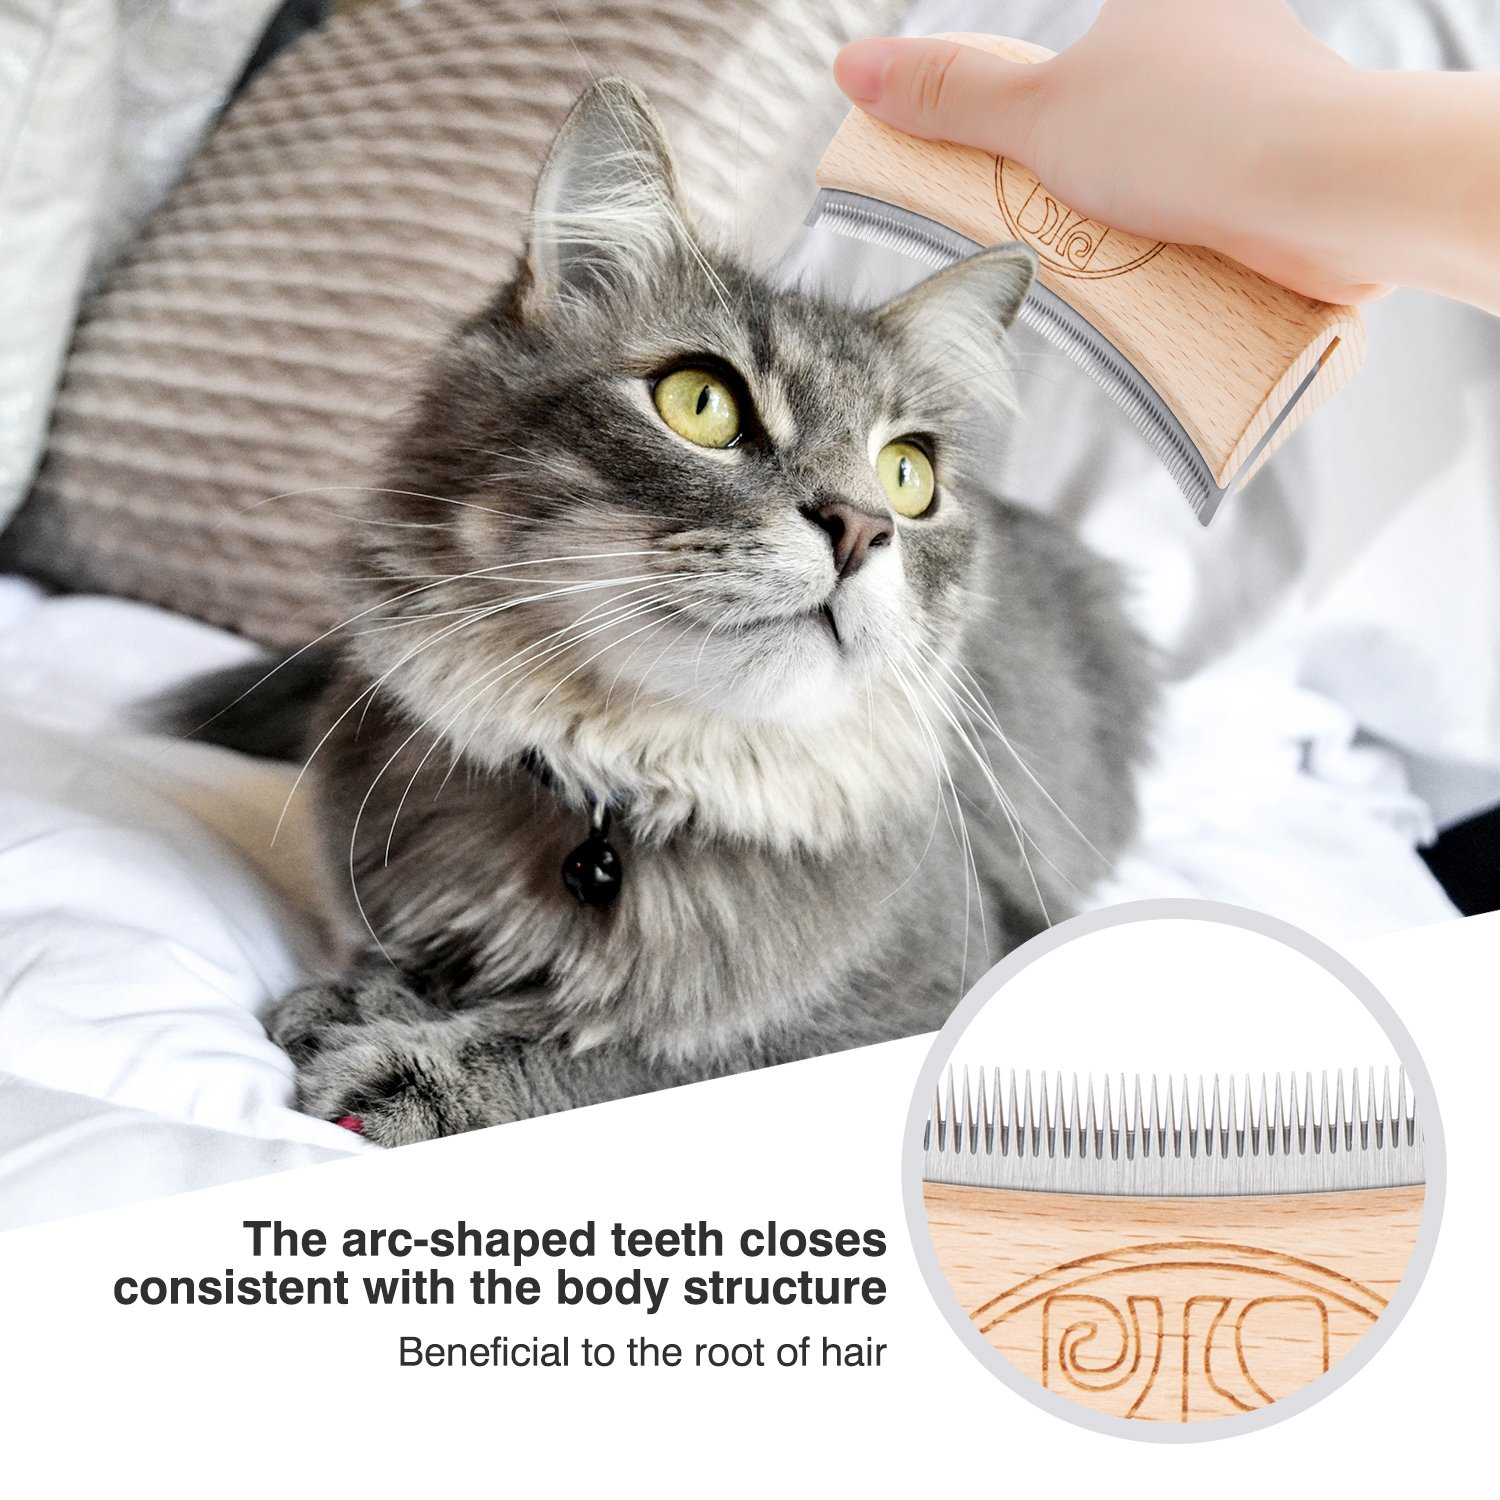 Made of Wood and Stainless Steel Static-Free Long-Life Safety Cat Shedding Comb Use Easy Dog Brushes for Shedding Effective Shedding Brush Tool